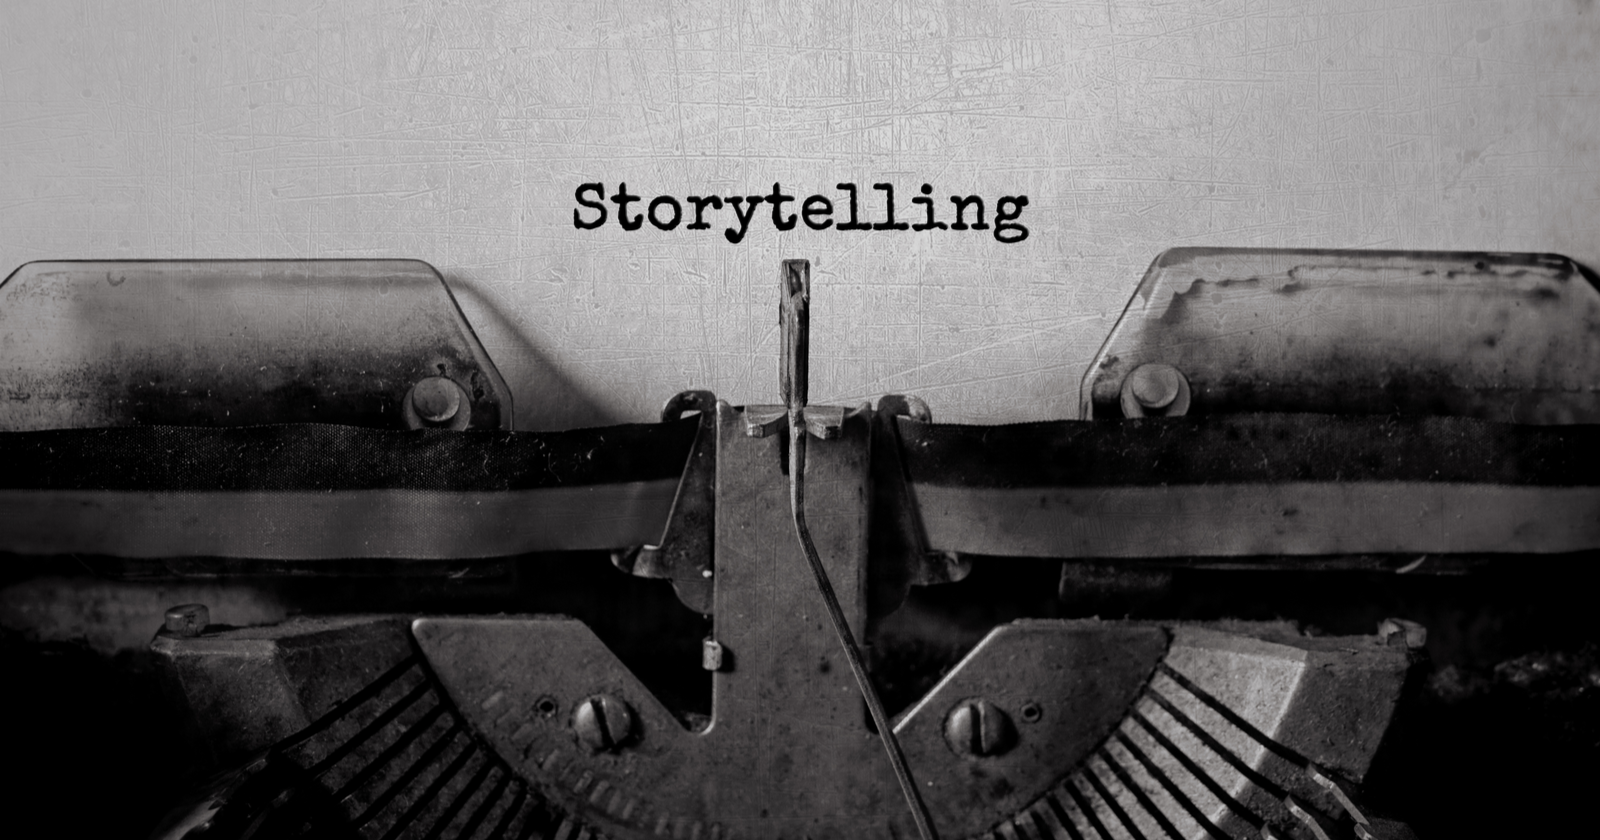 storytelling-in-a-covid-19-world-5f3fc6f86673c.png